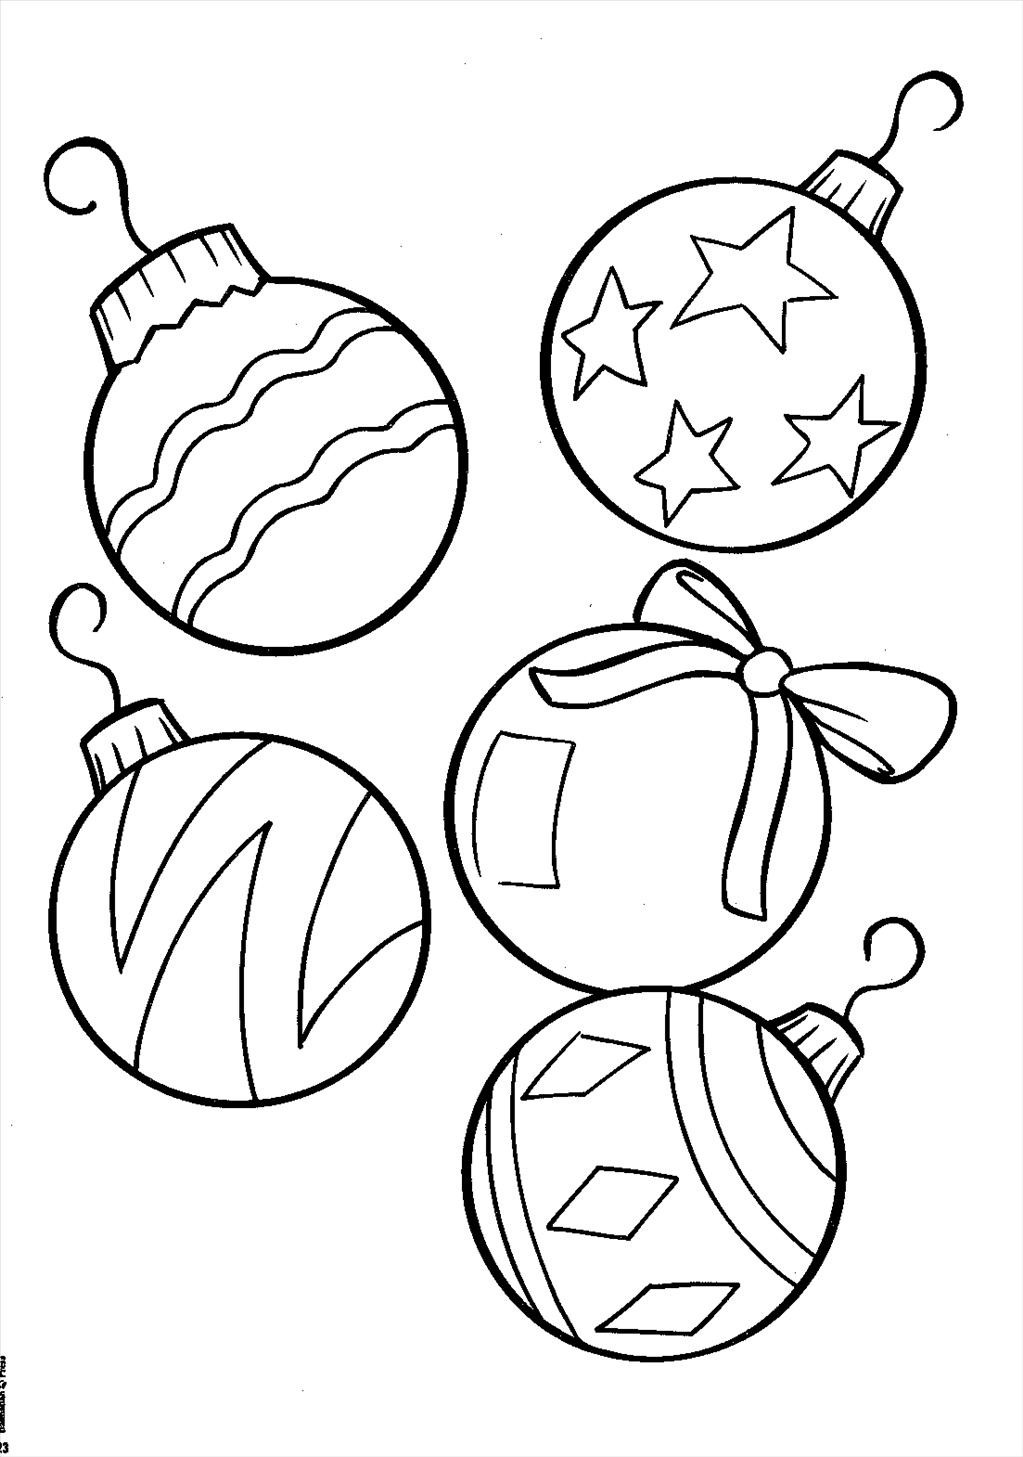 Christmas Decorations Coloring Pages With Ornament